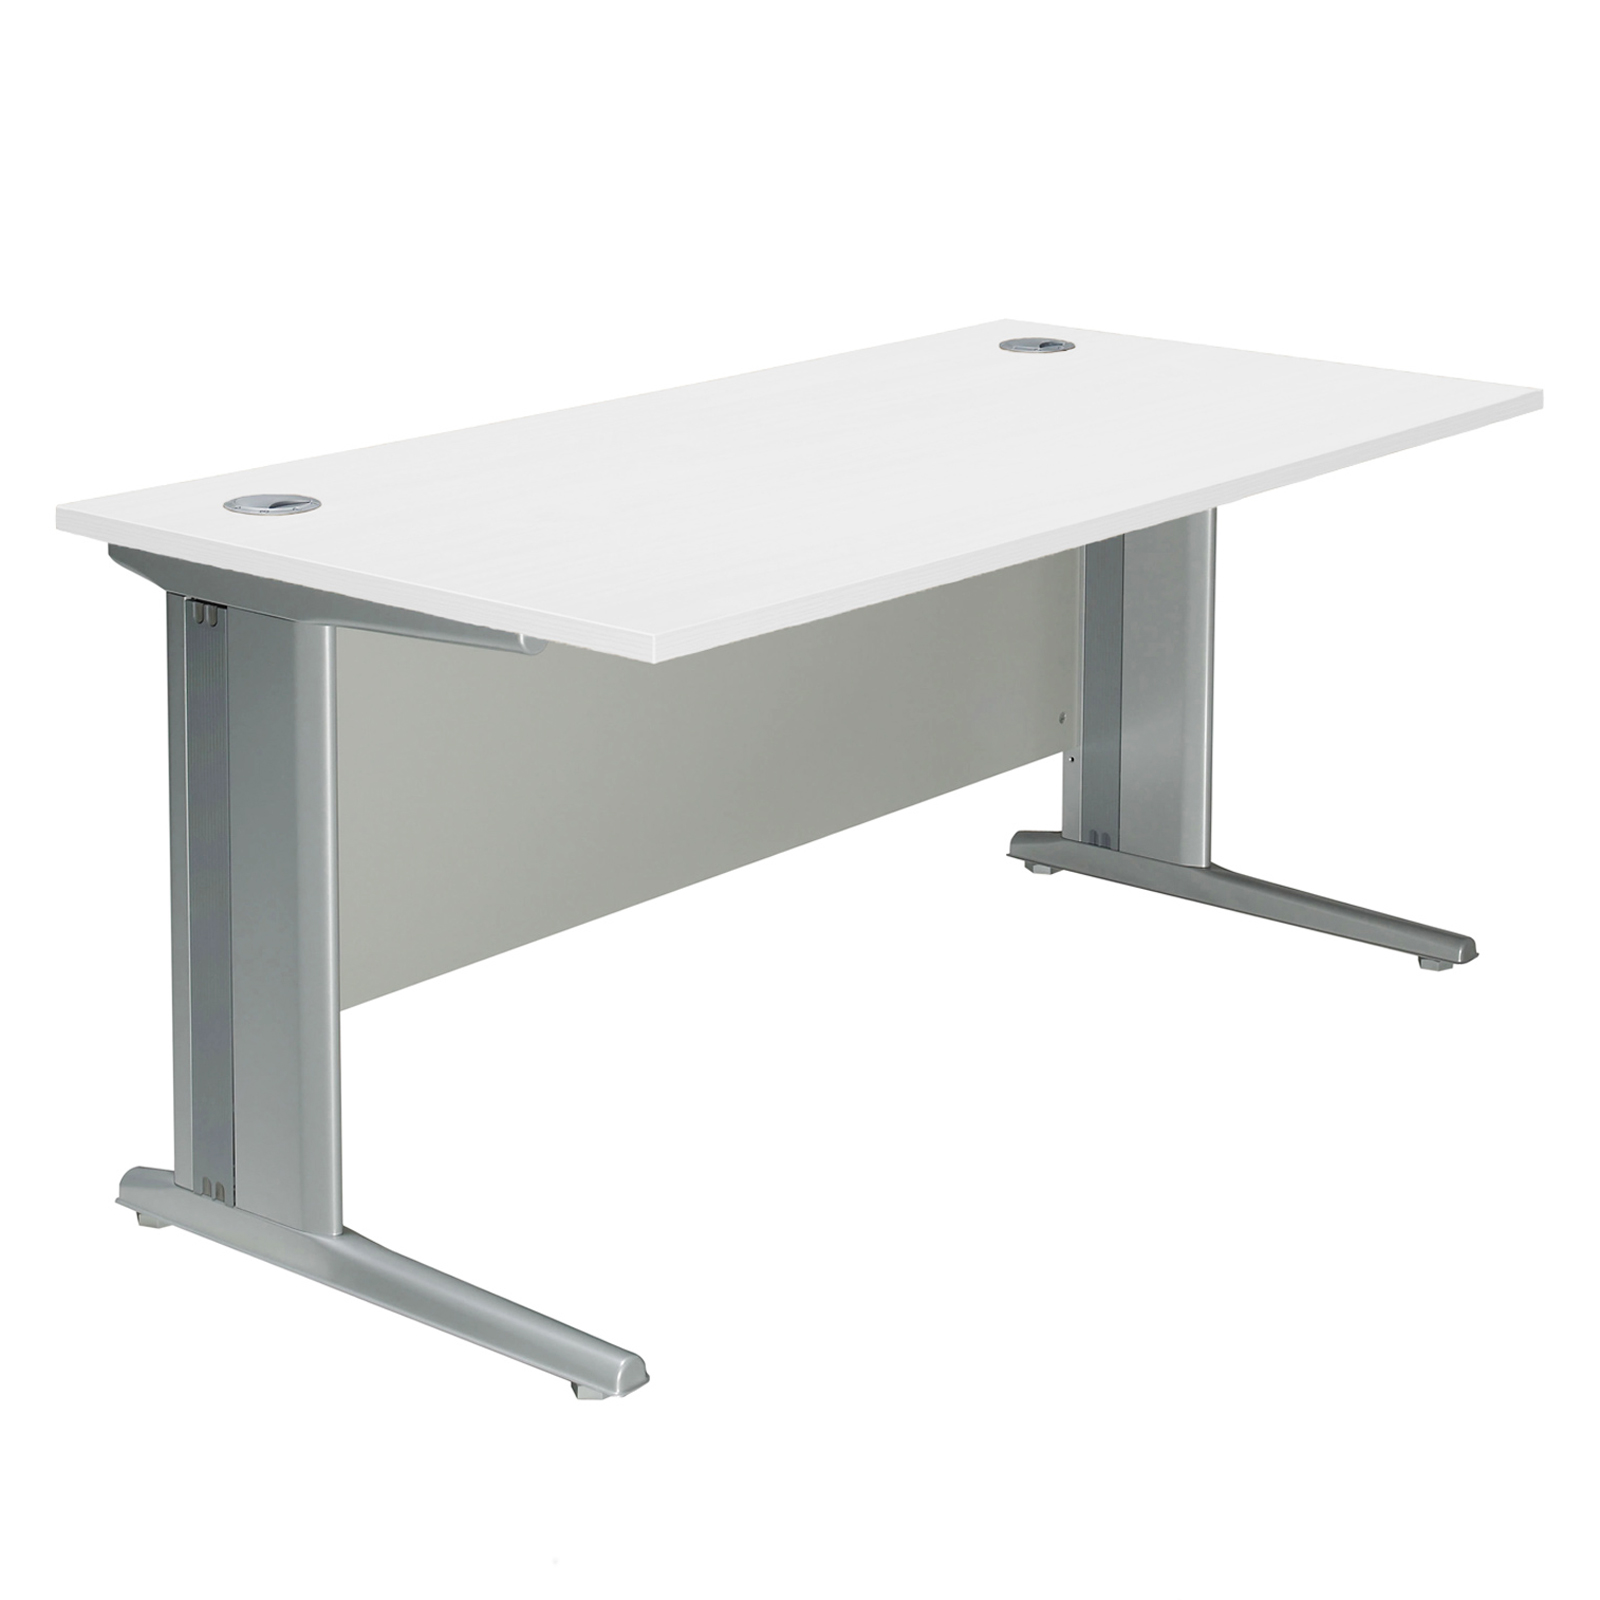 bluespot white small work office computer desk with foot board 120cm ebay. Black Bedroom Furniture Sets. Home Design Ideas